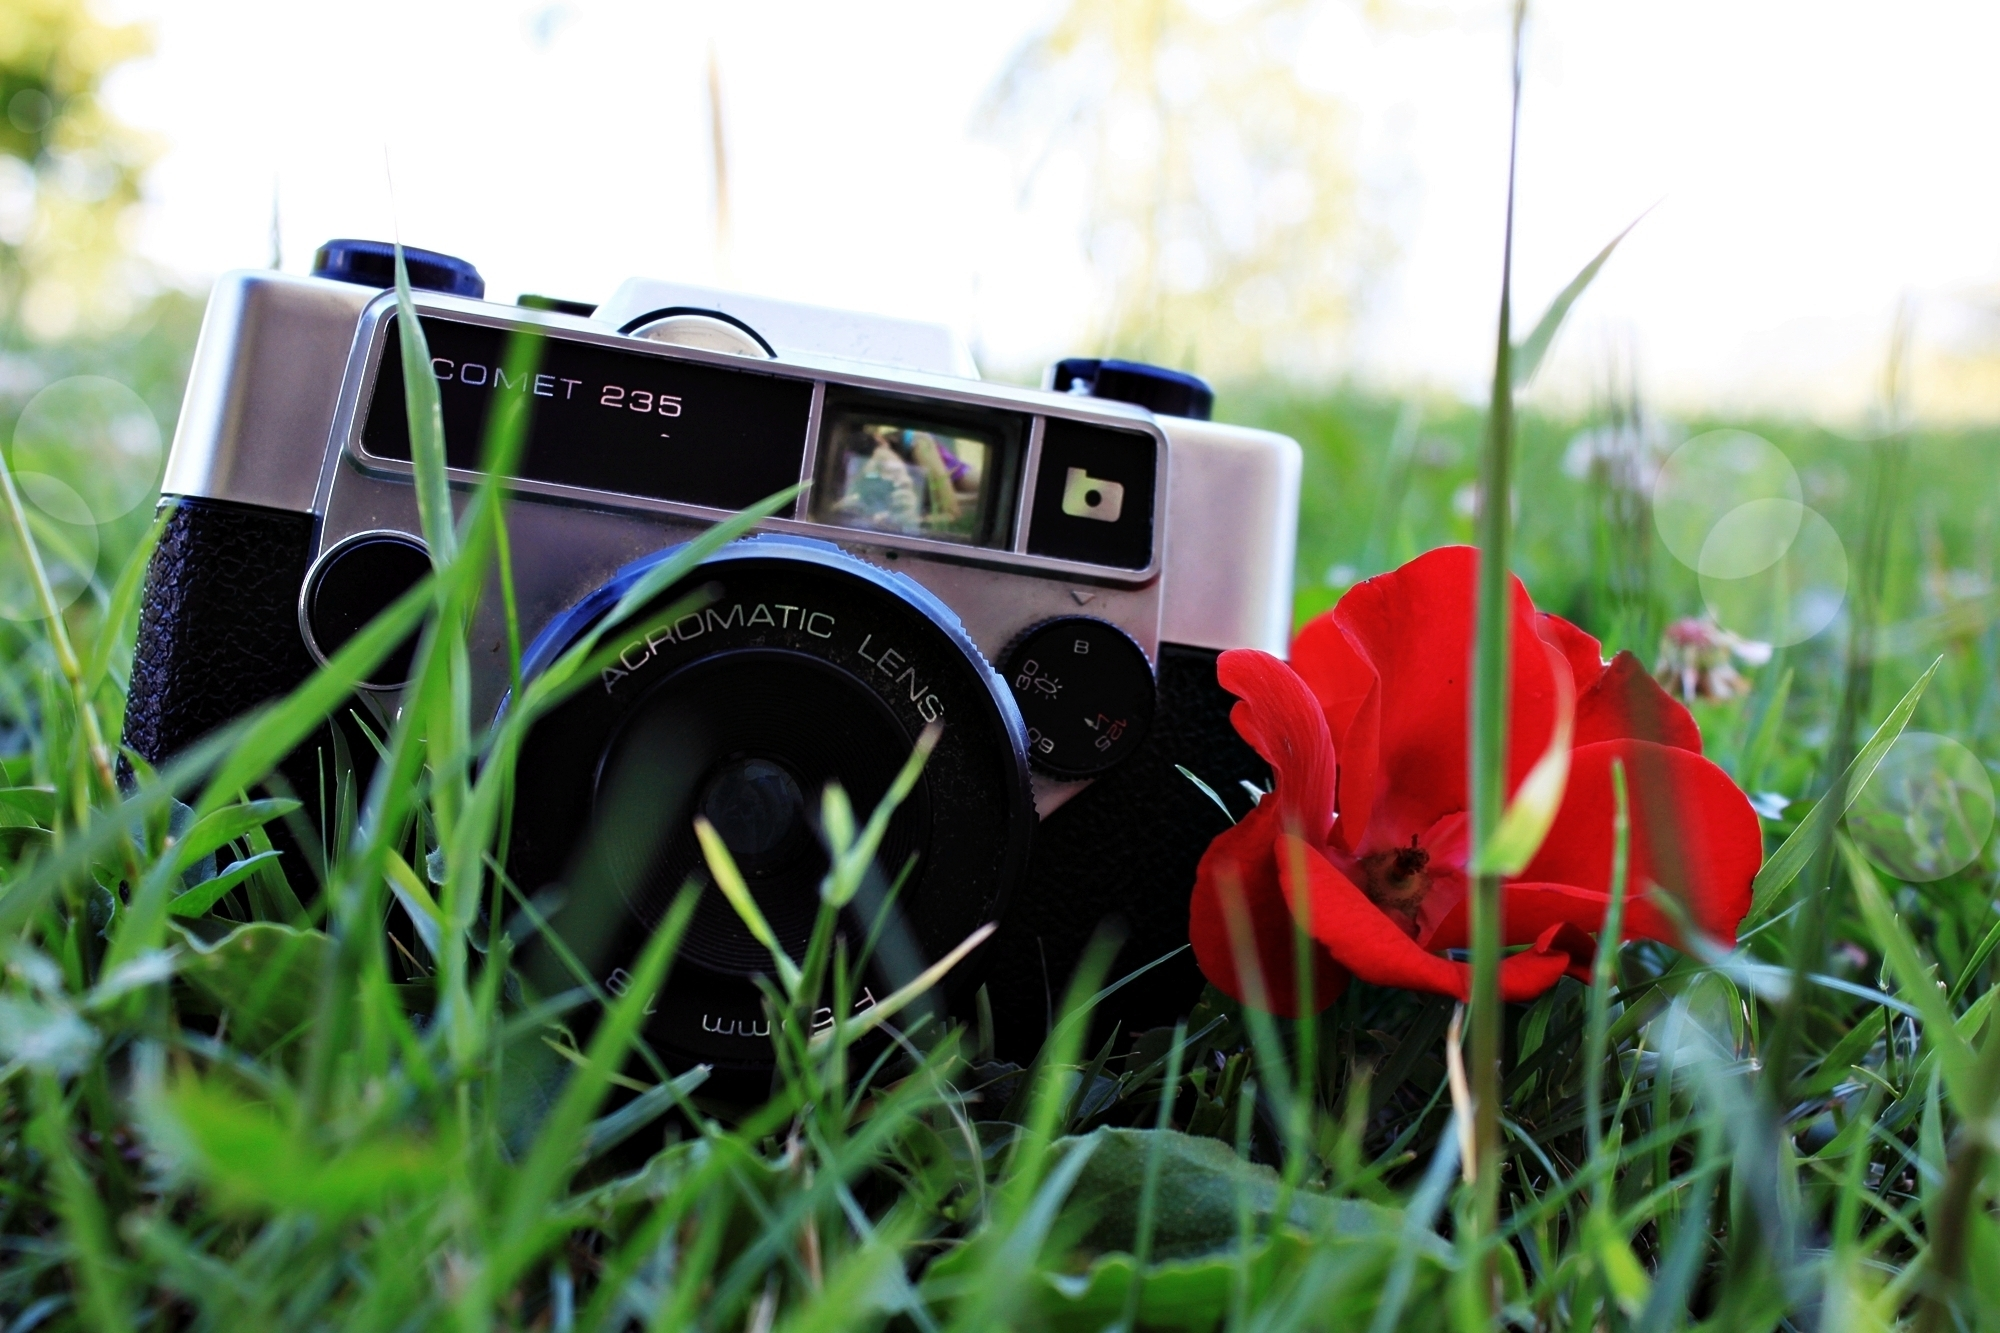 52007 download wallpaper Grass, Background, Flower, Plant, Miscellanea, Miscellaneous, Lens, Mood, Camera, Poppy, Floweret, Moods screensavers and pictures for free